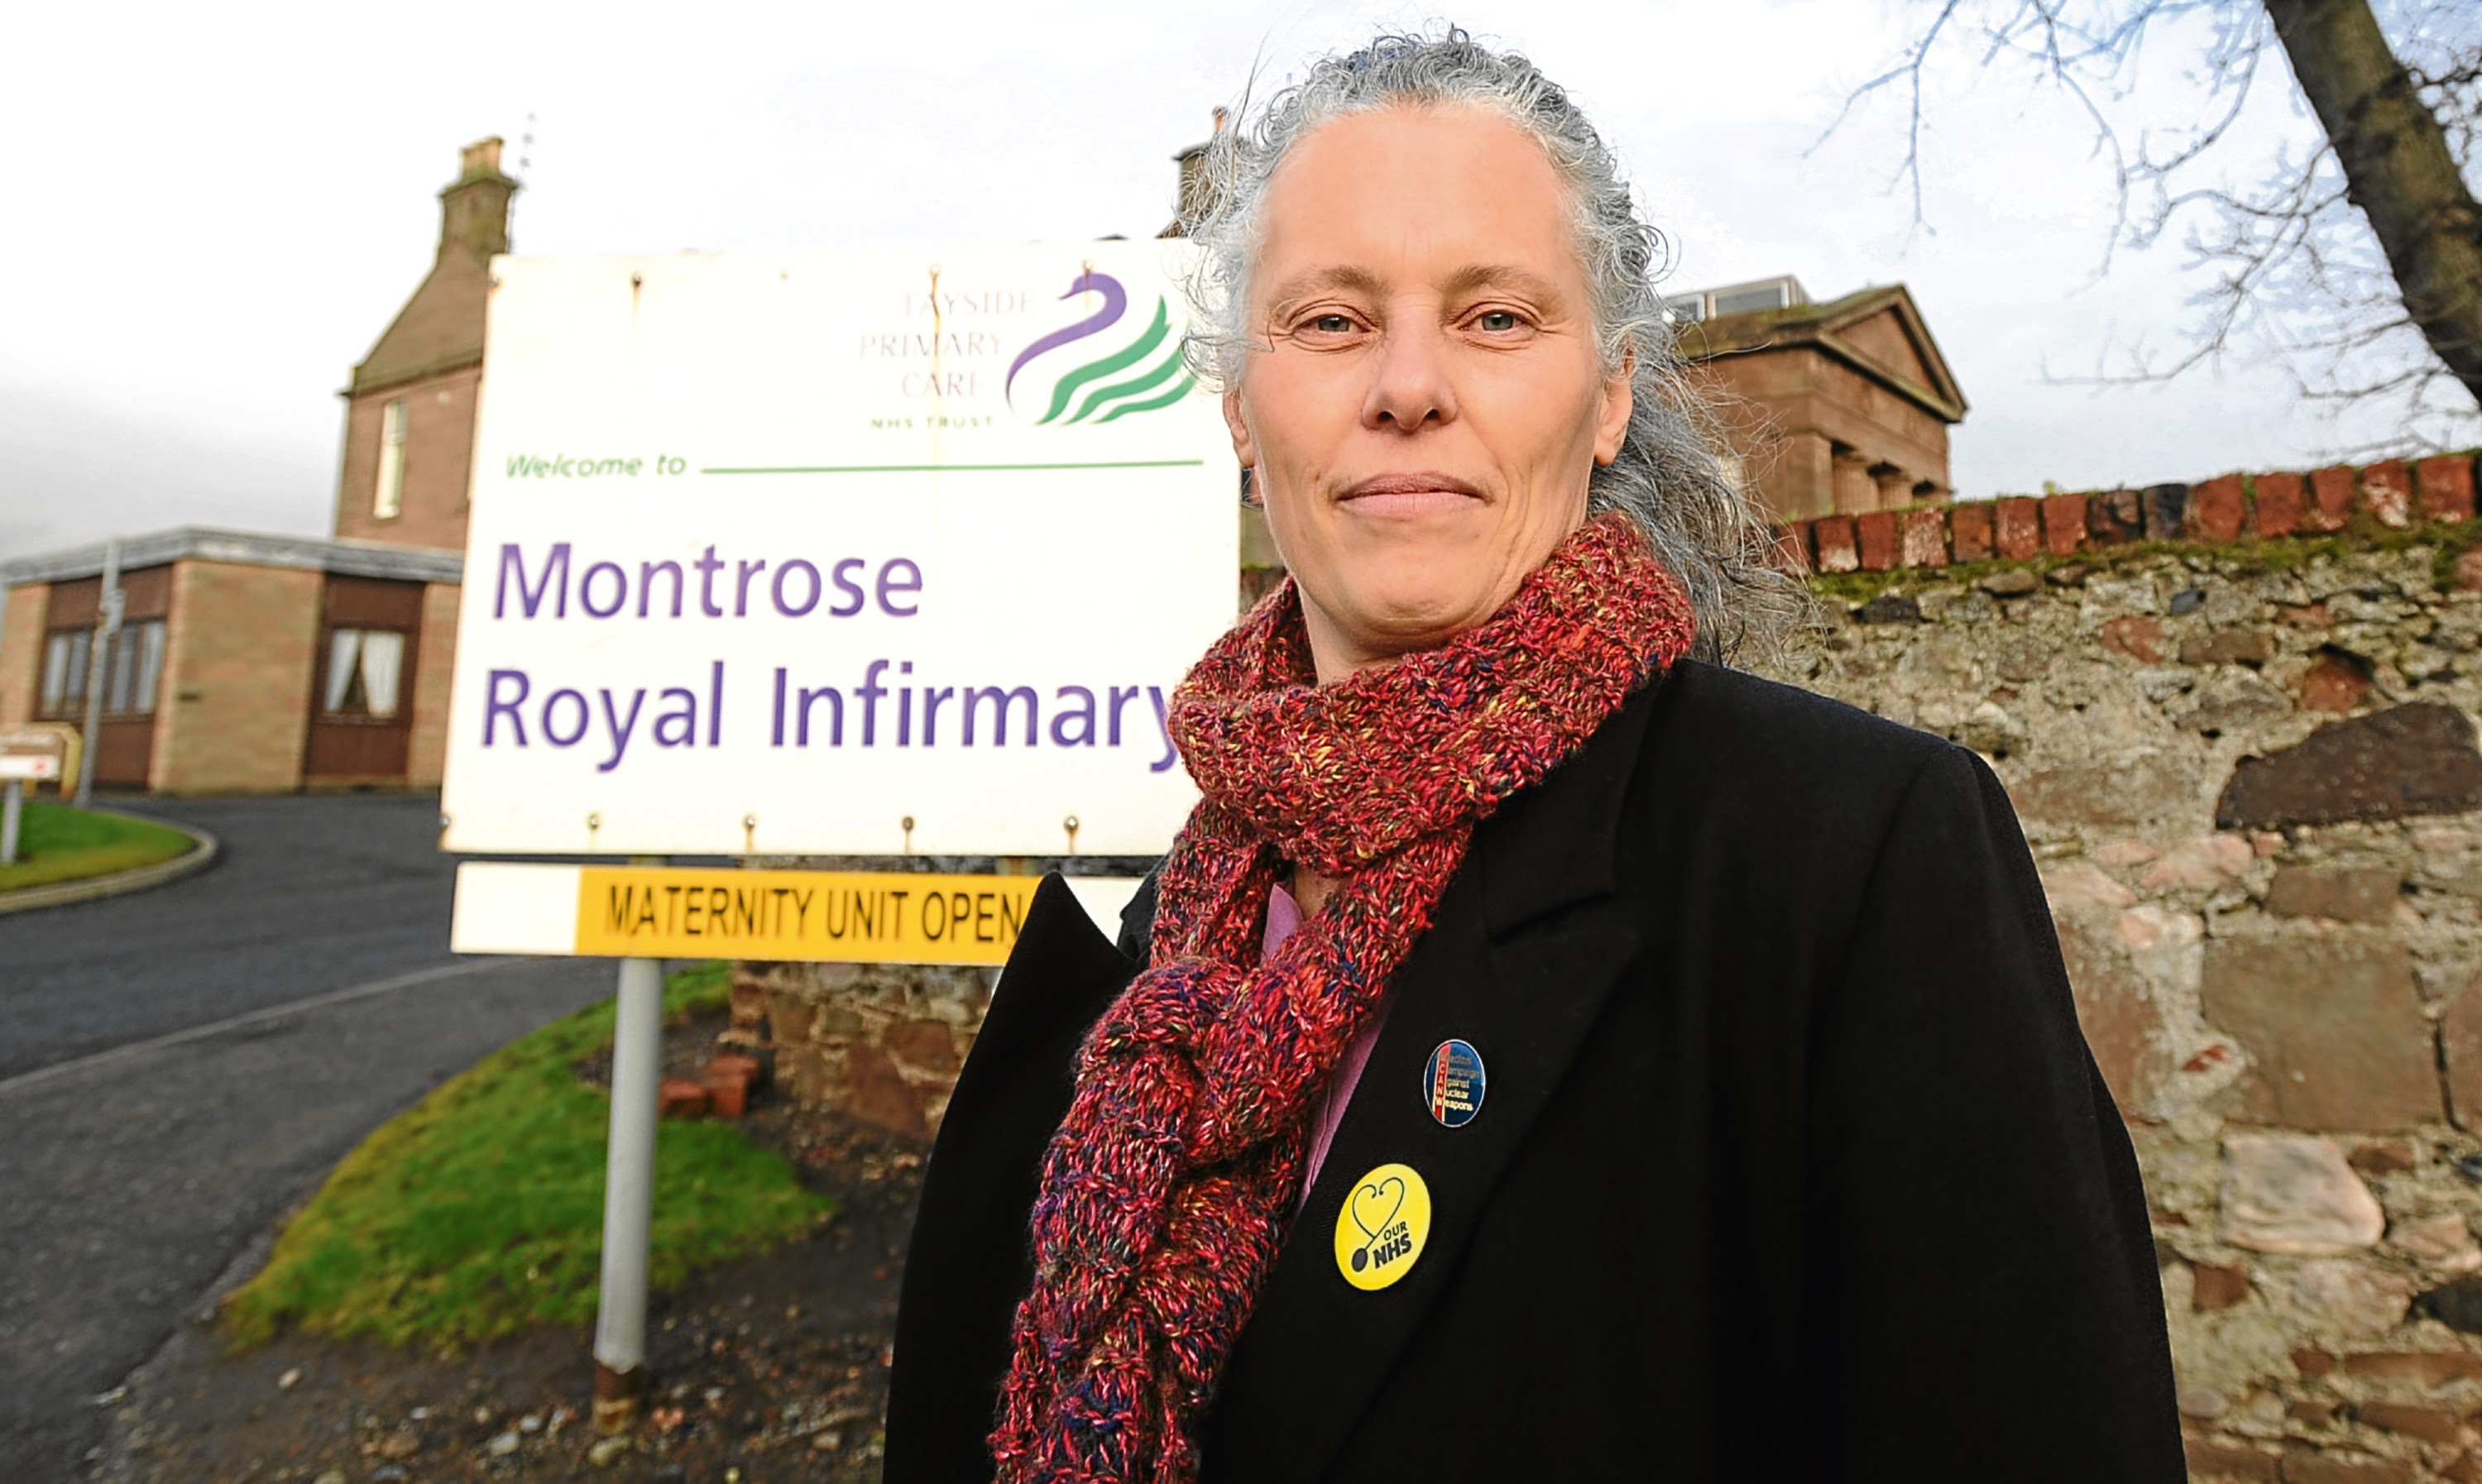 GP Dr Kristien Hintjens fears for the future of Montrose Royal Infirmary.